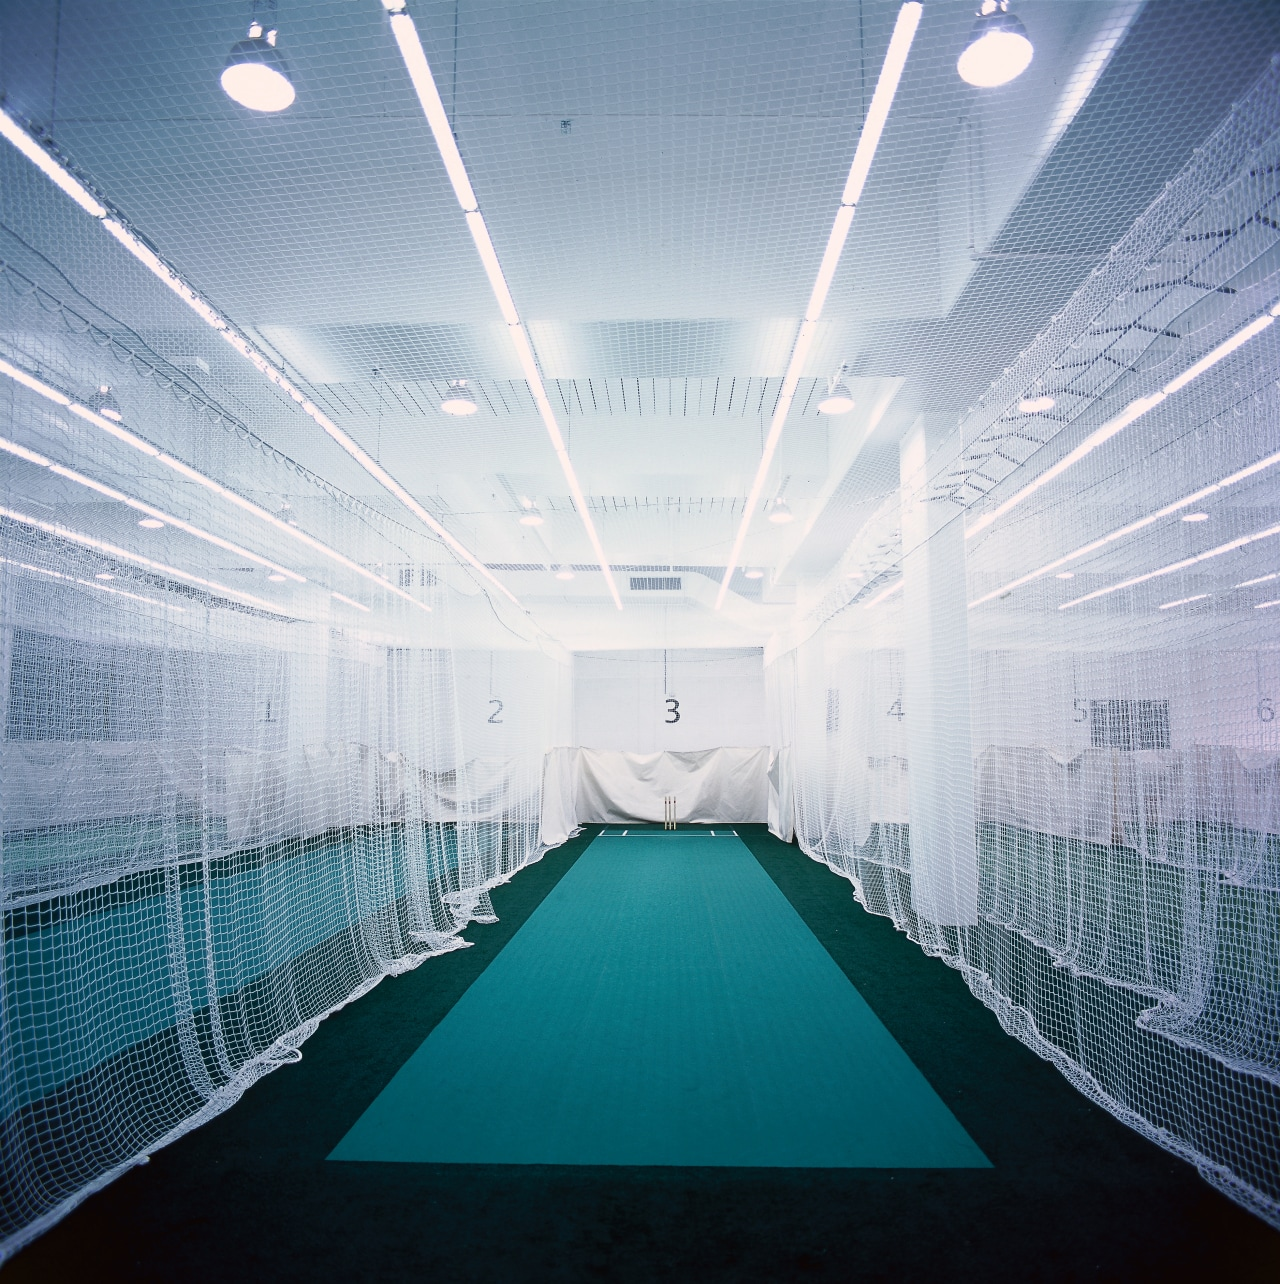 View of indoor cricket practice nets with strong architecture, ceiling, daylighting, daytime, light, lighting, sky, structure, symmetry, gray